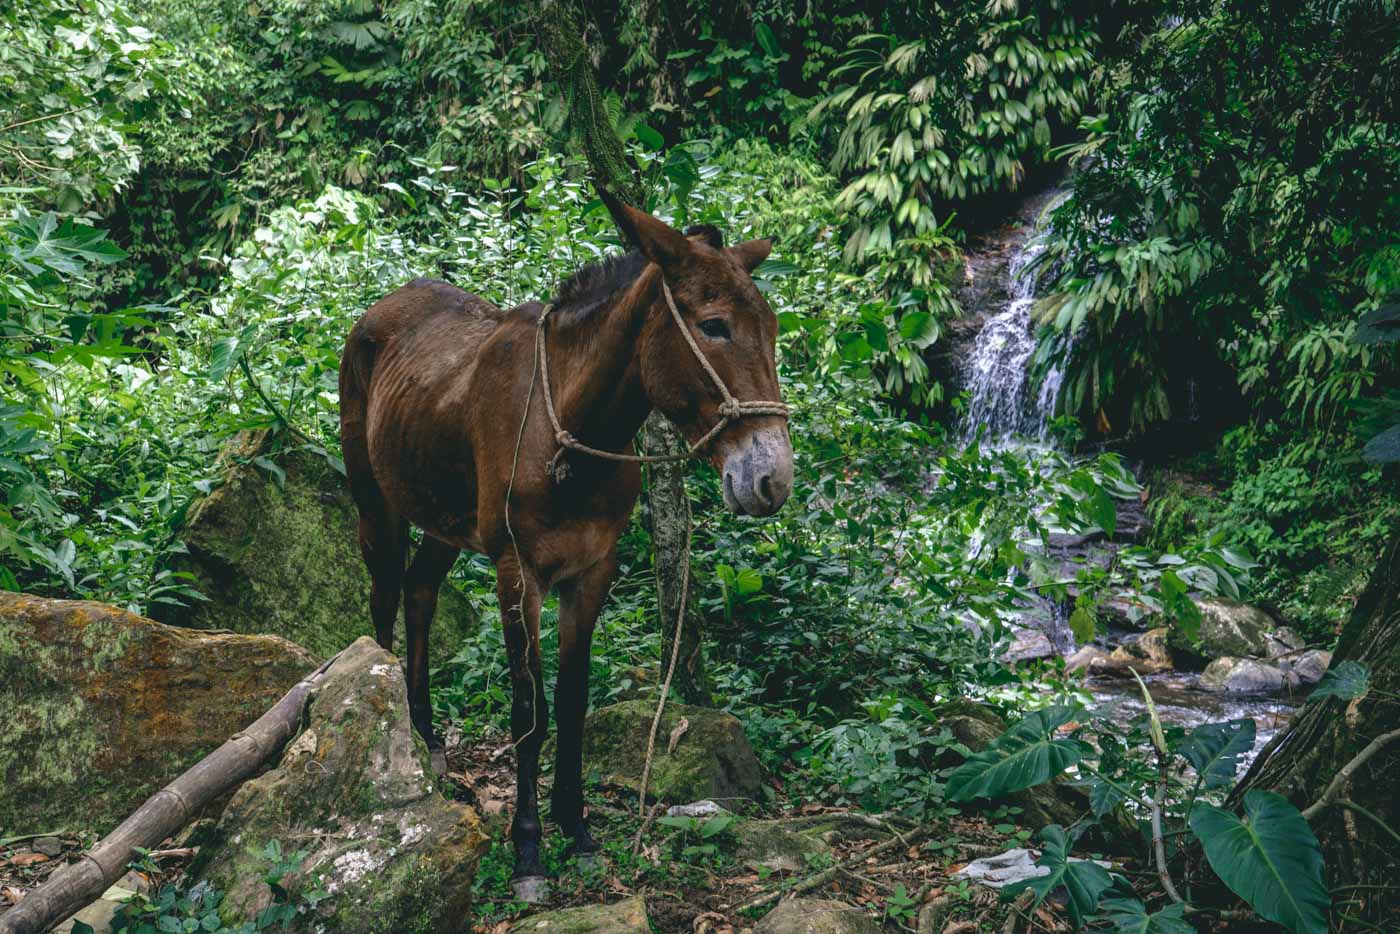 parque tayrona: Hiring a horse is a practical solution if your pack is heavy! Tayrona National Park